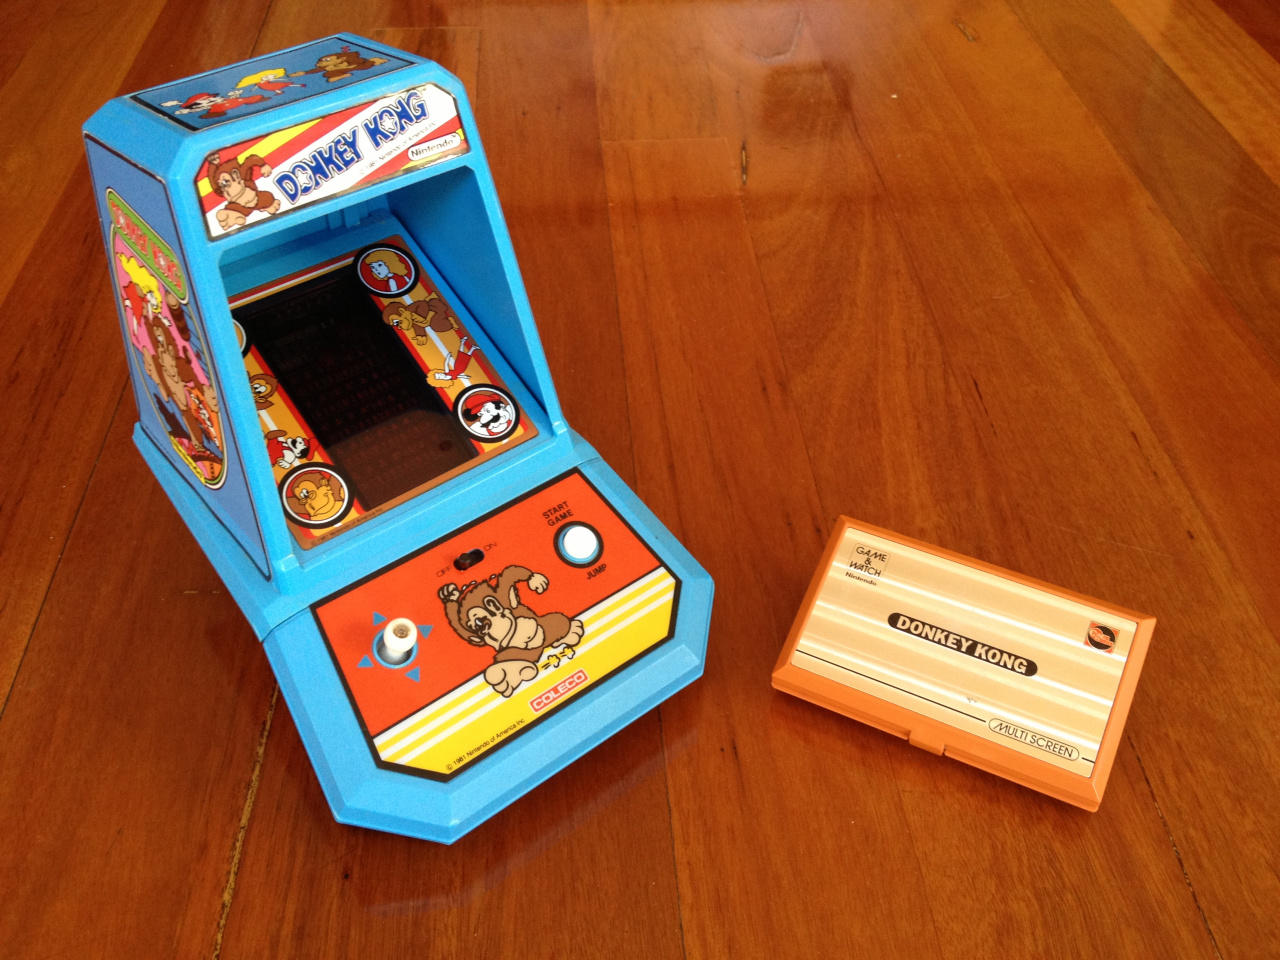 Feature: Nintendo Battle - Donkey Kong: Tabletop vs. Game & Watch